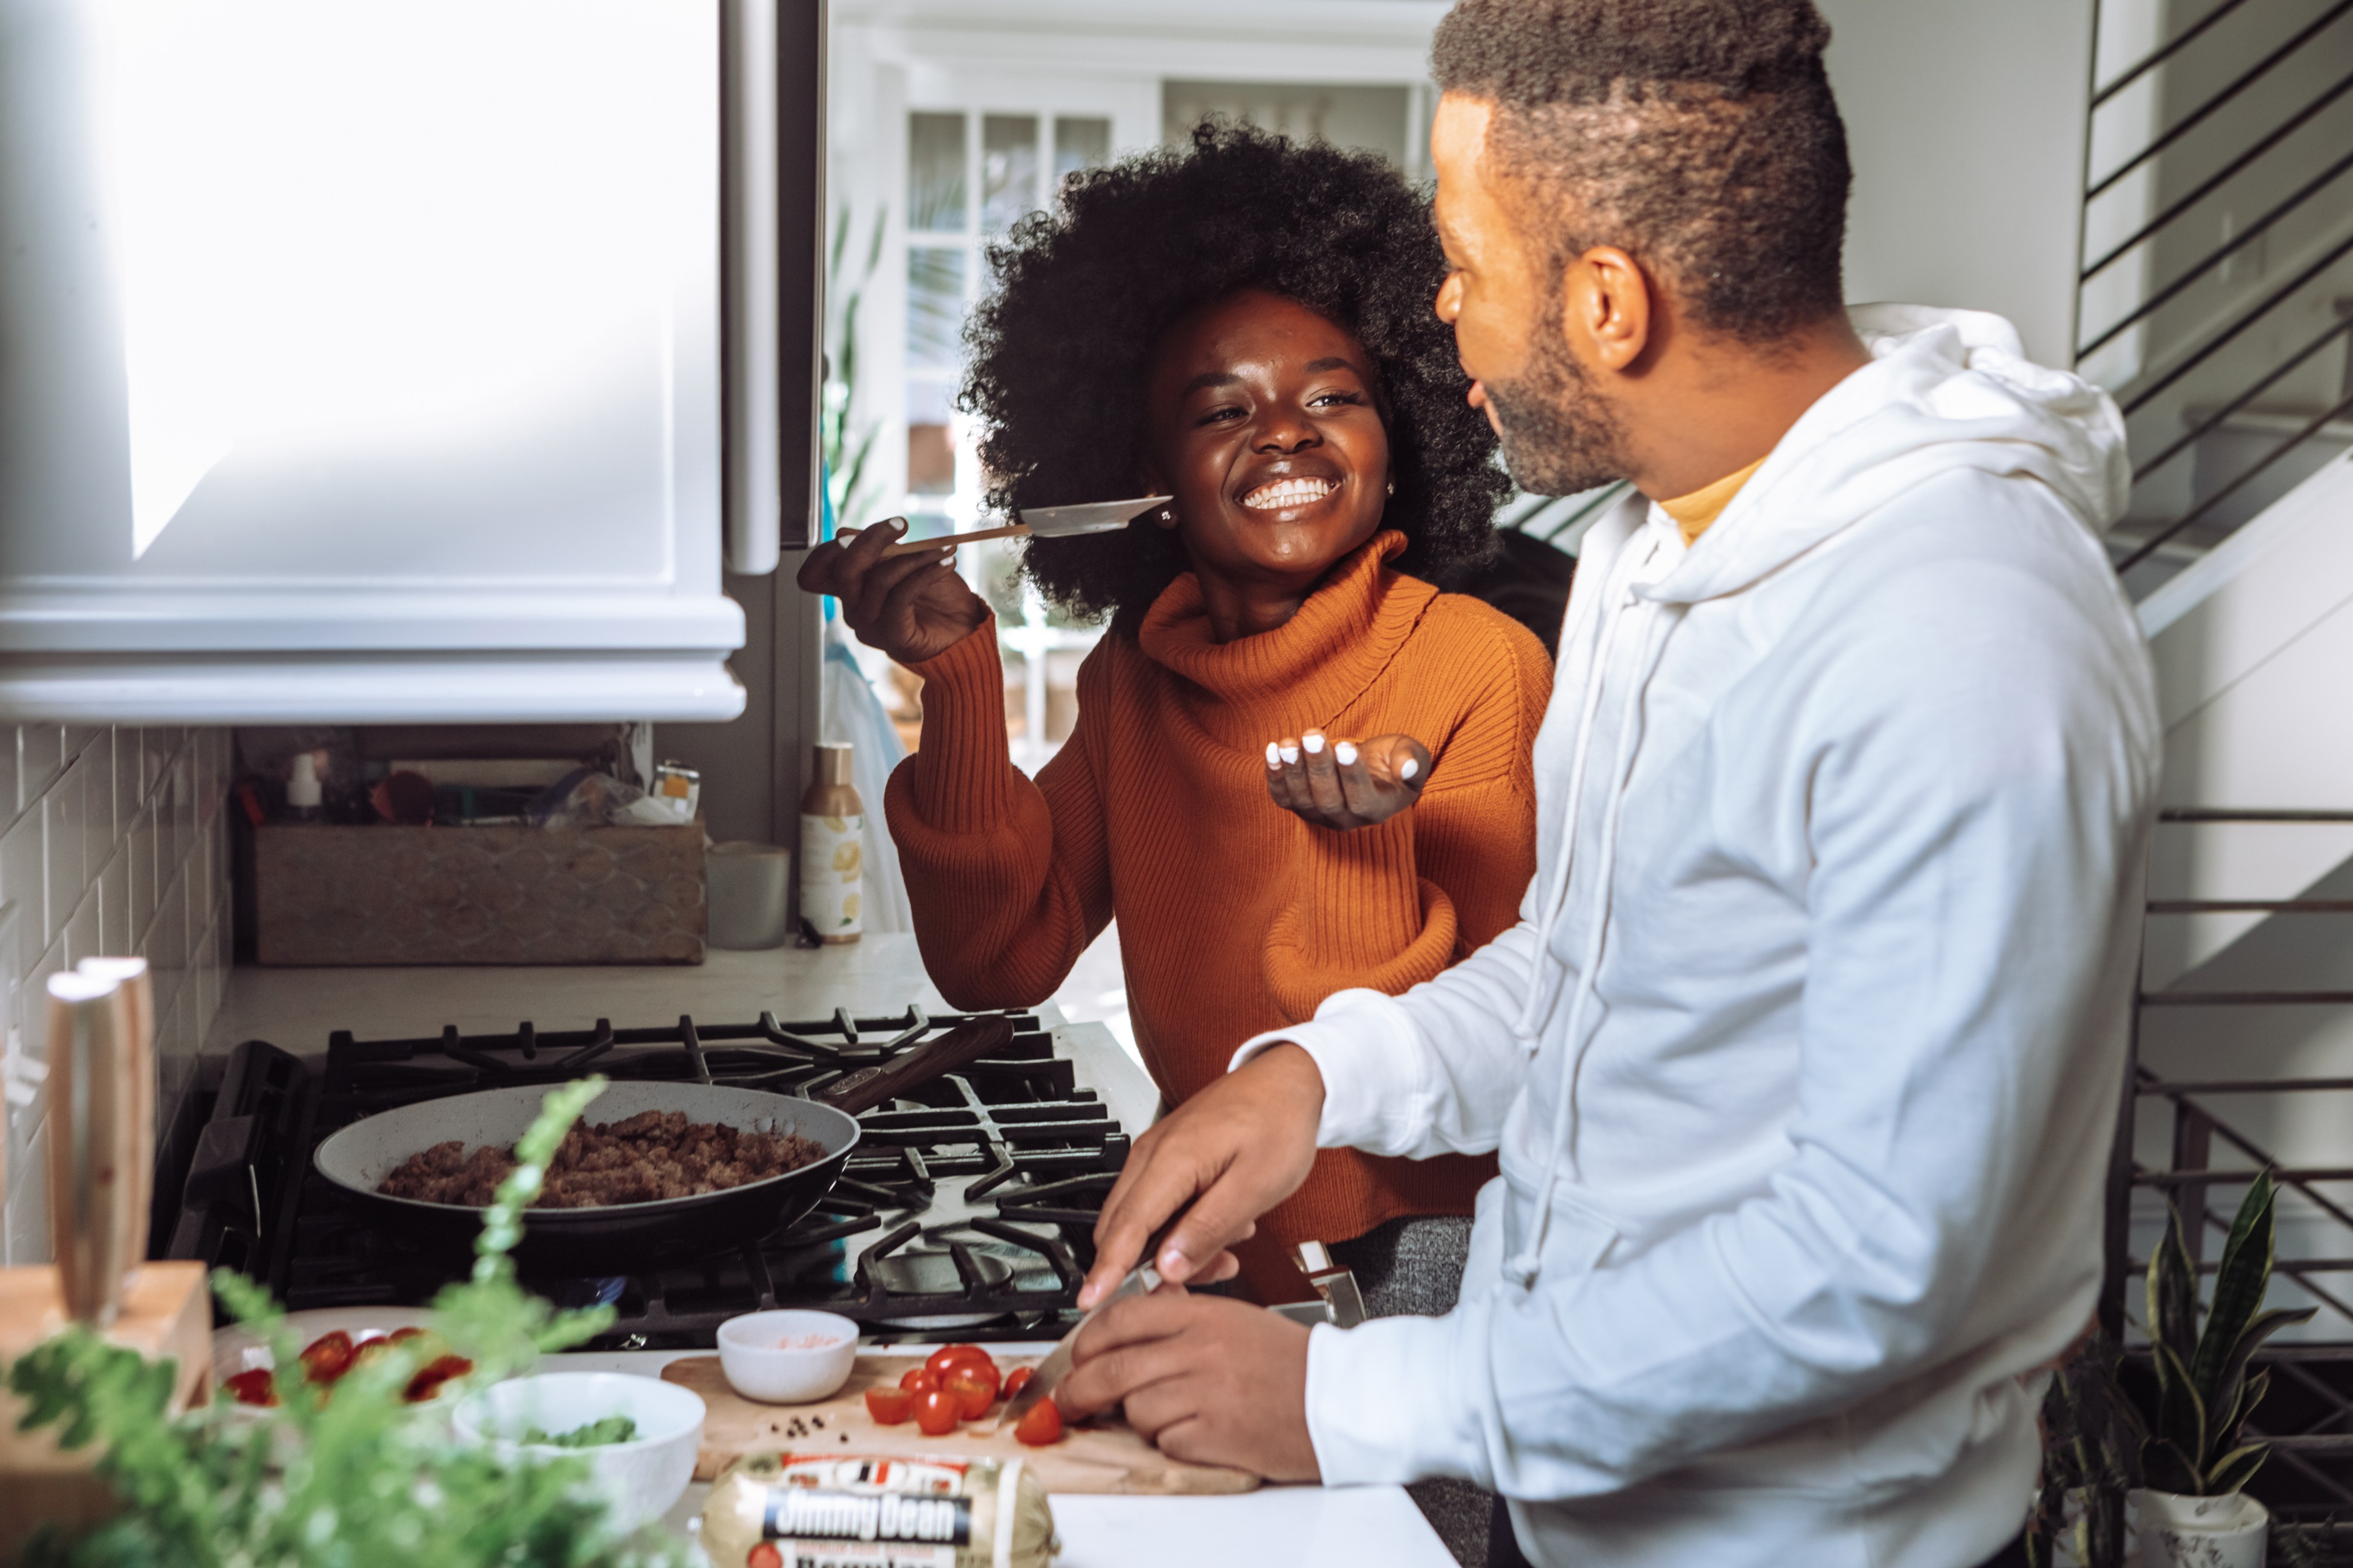 A Black woman in a kitchen with her partner. She is holding up a spoon and grinning widely, as her partner chops up some tomatoes.